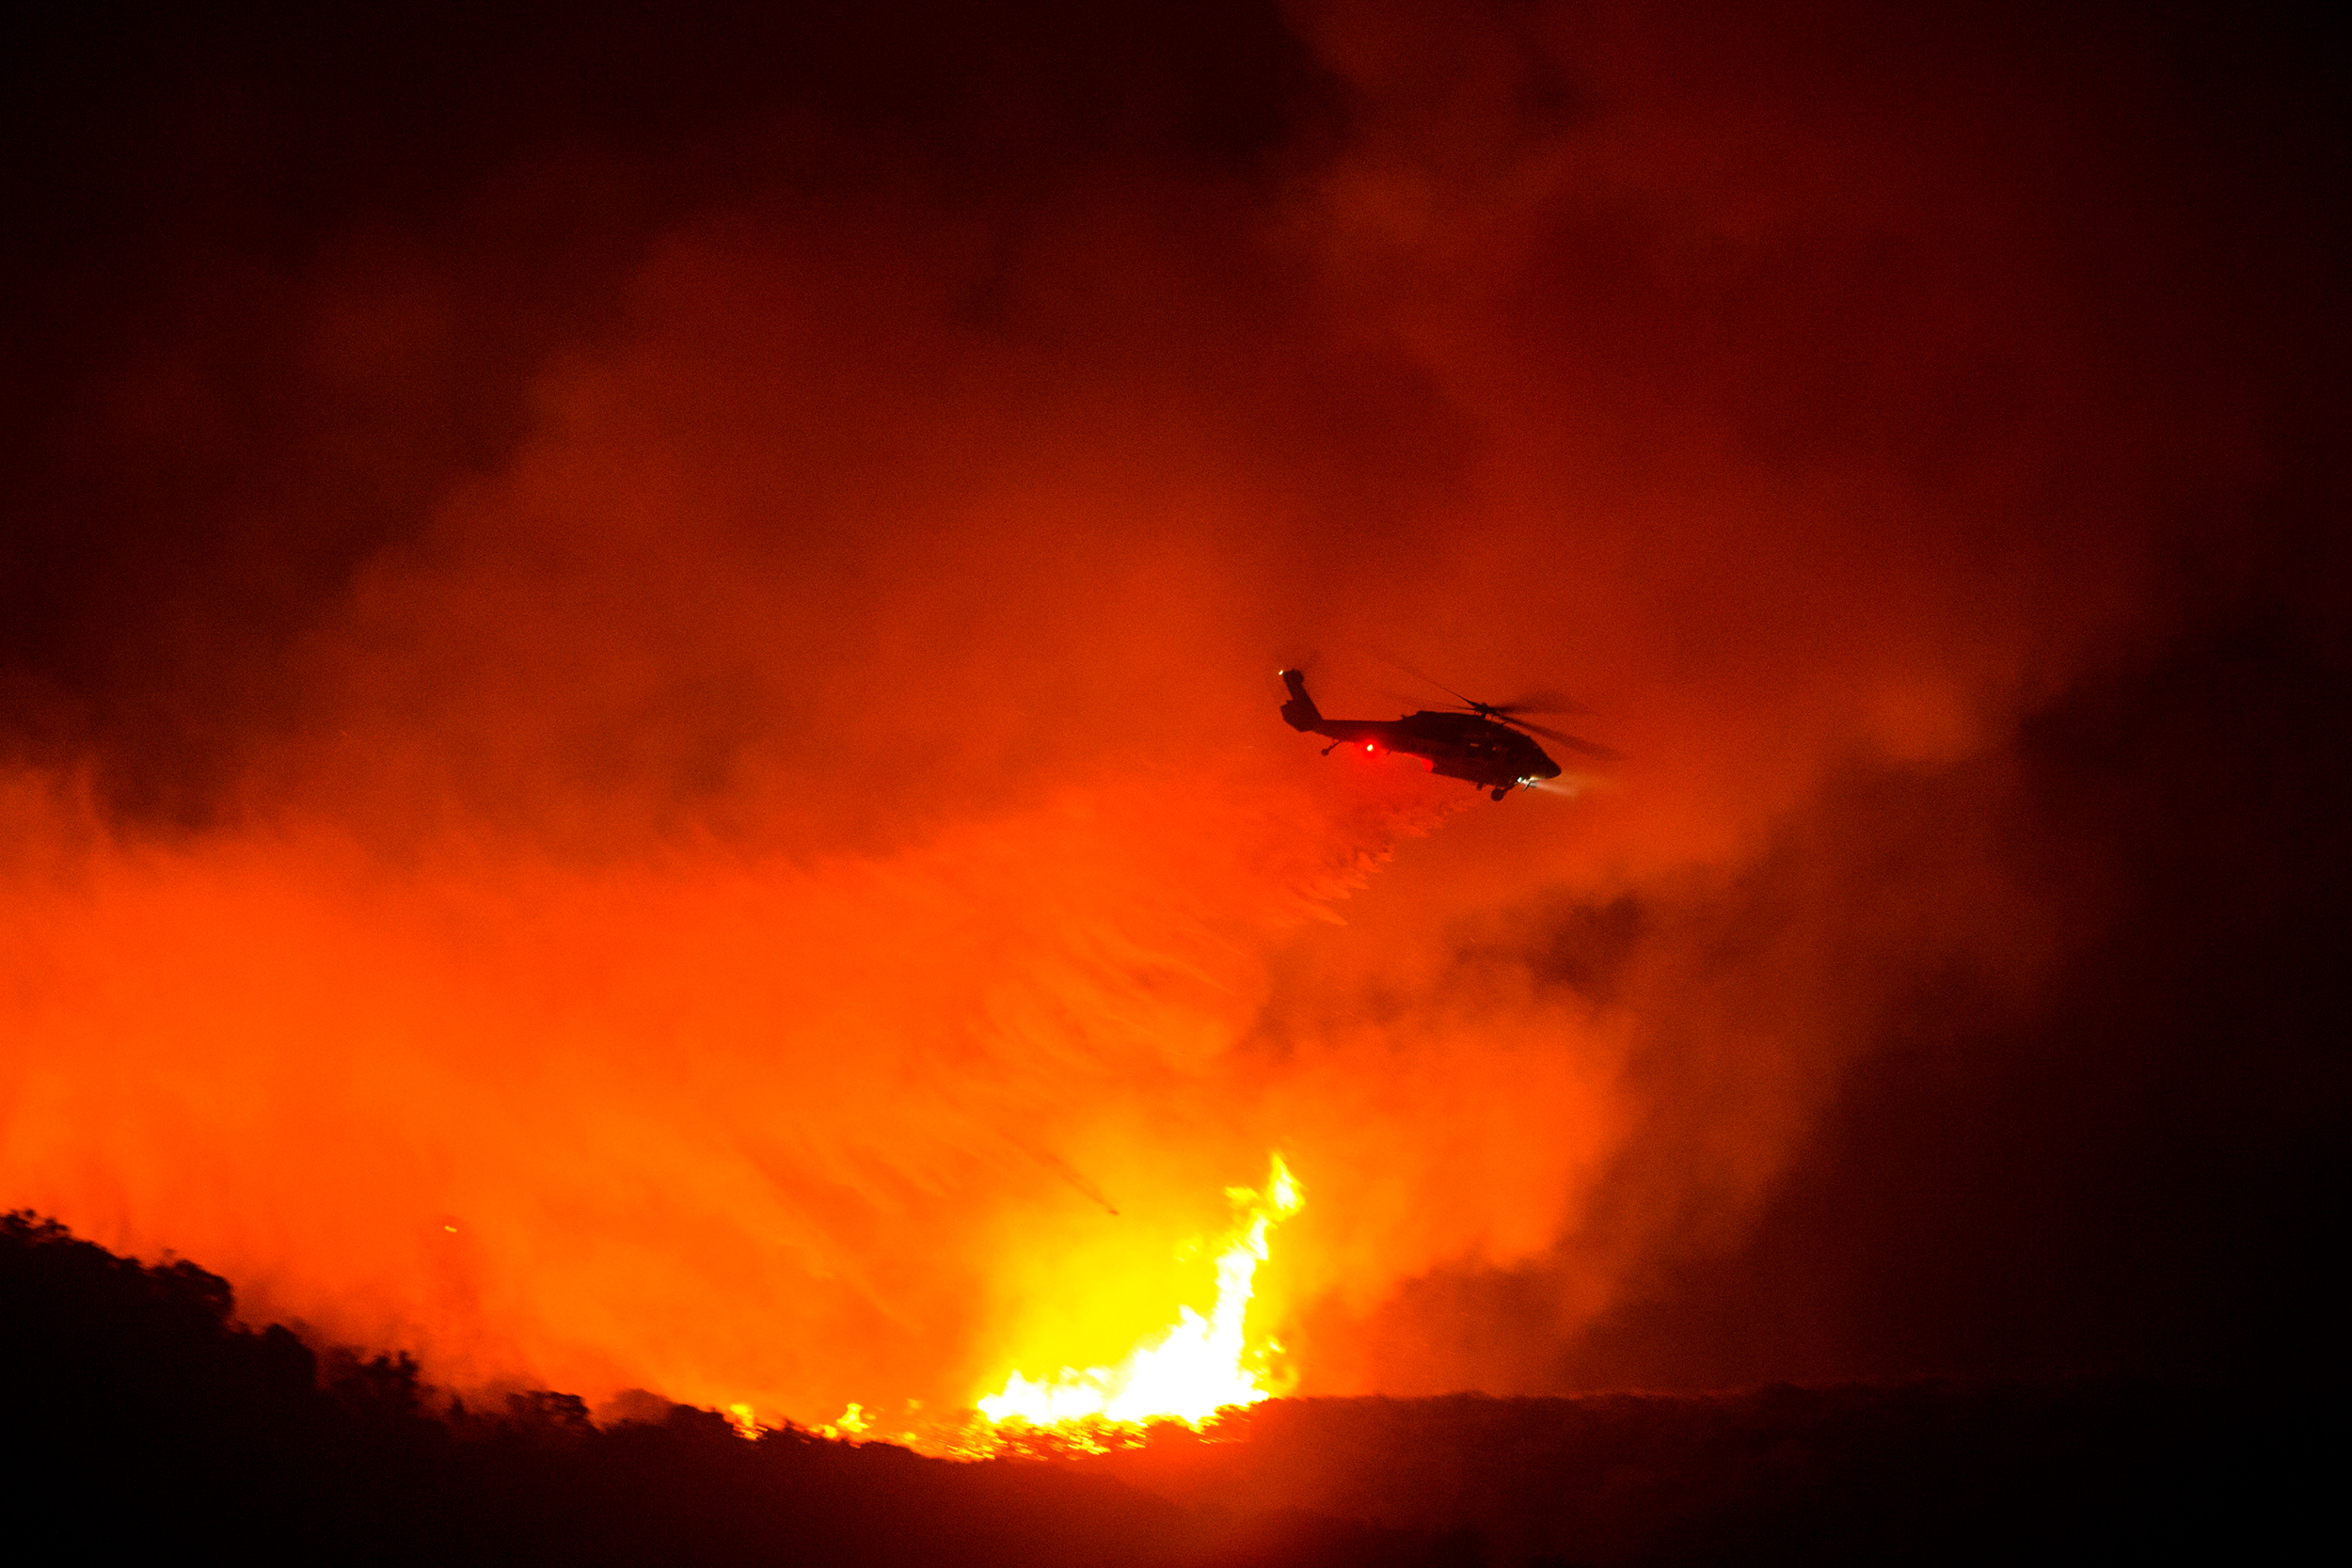 Wildfires have scorched about 100,000 acres in 3 states. The weather could make things worse